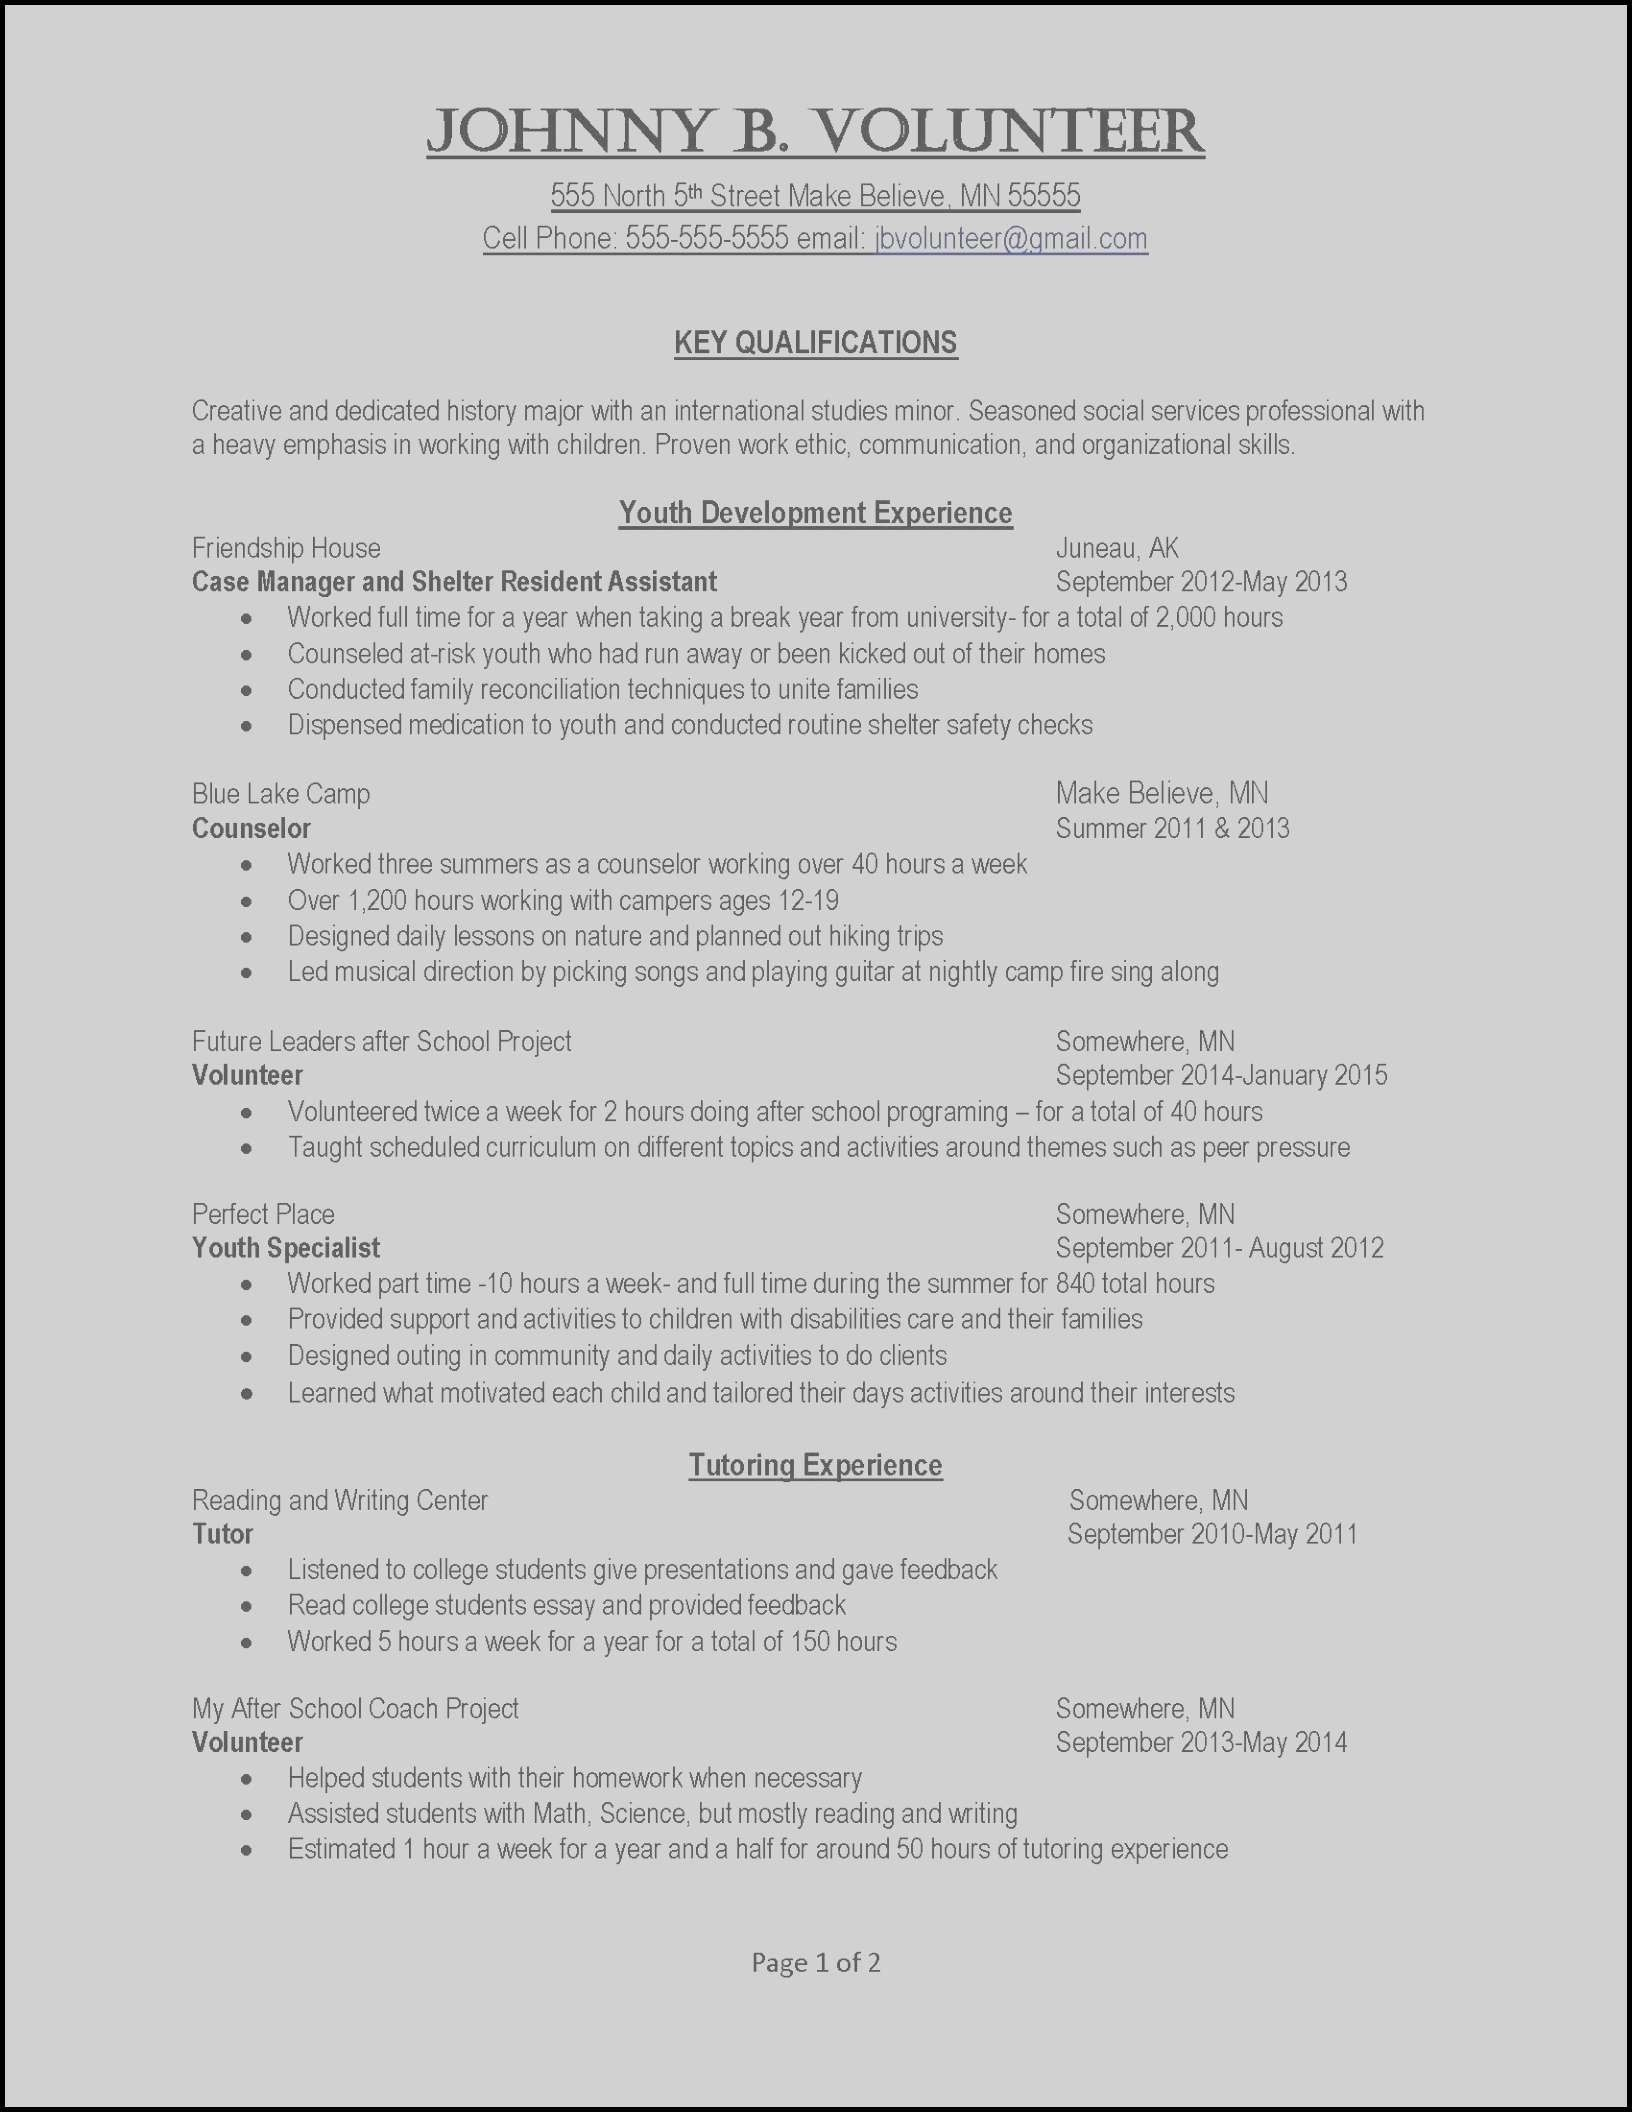 68 Cool Image Of Resume Cover Letter Examples 2013 | Resume ...